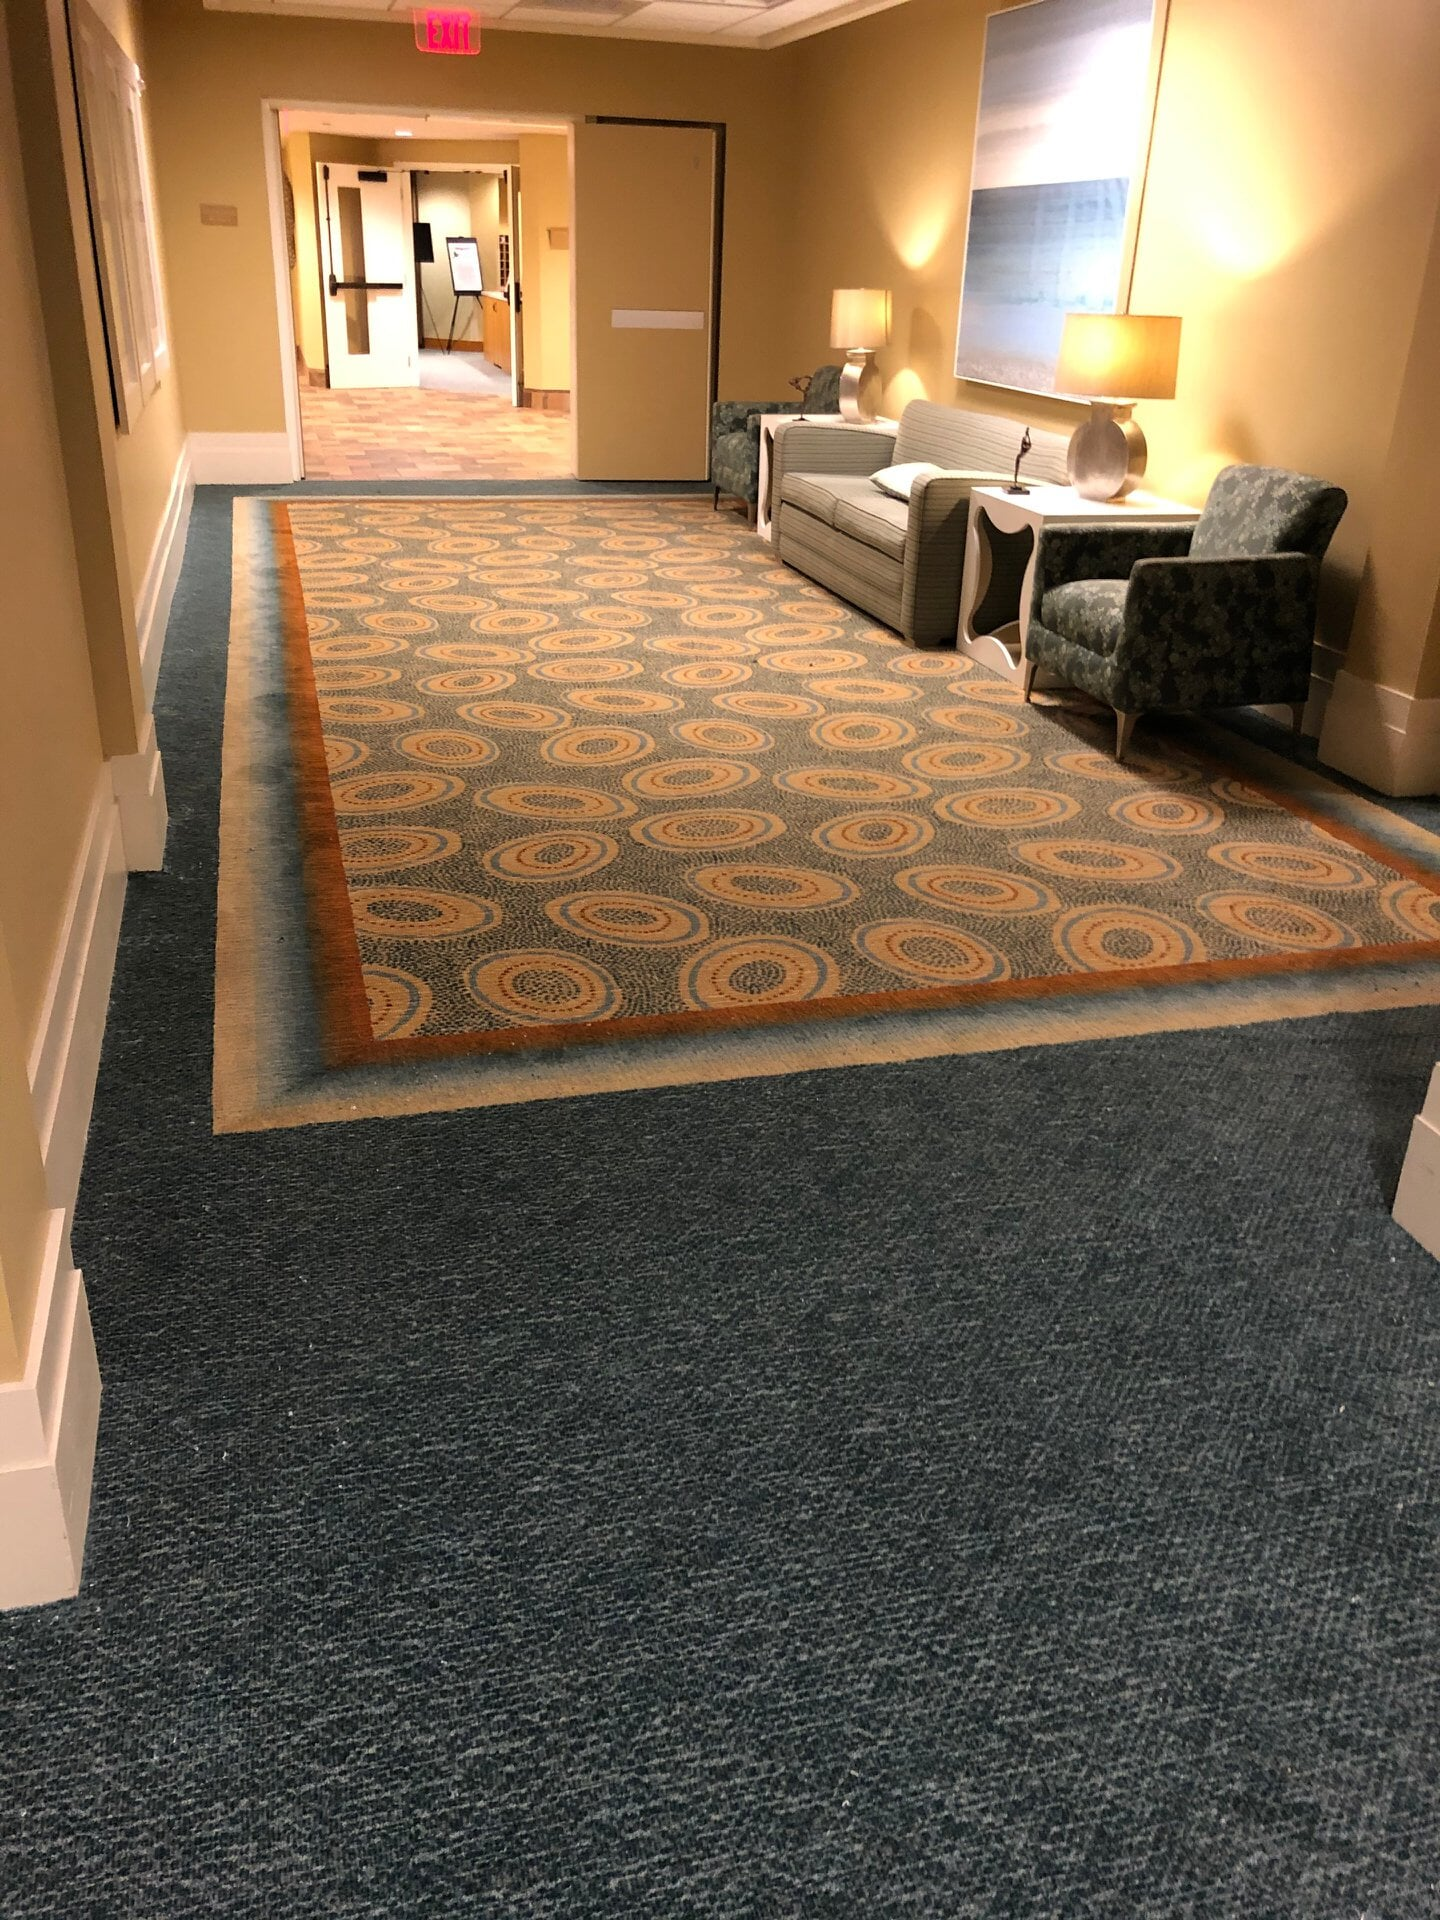 Commercial carpet flooring from StarFloors in Allen, TX